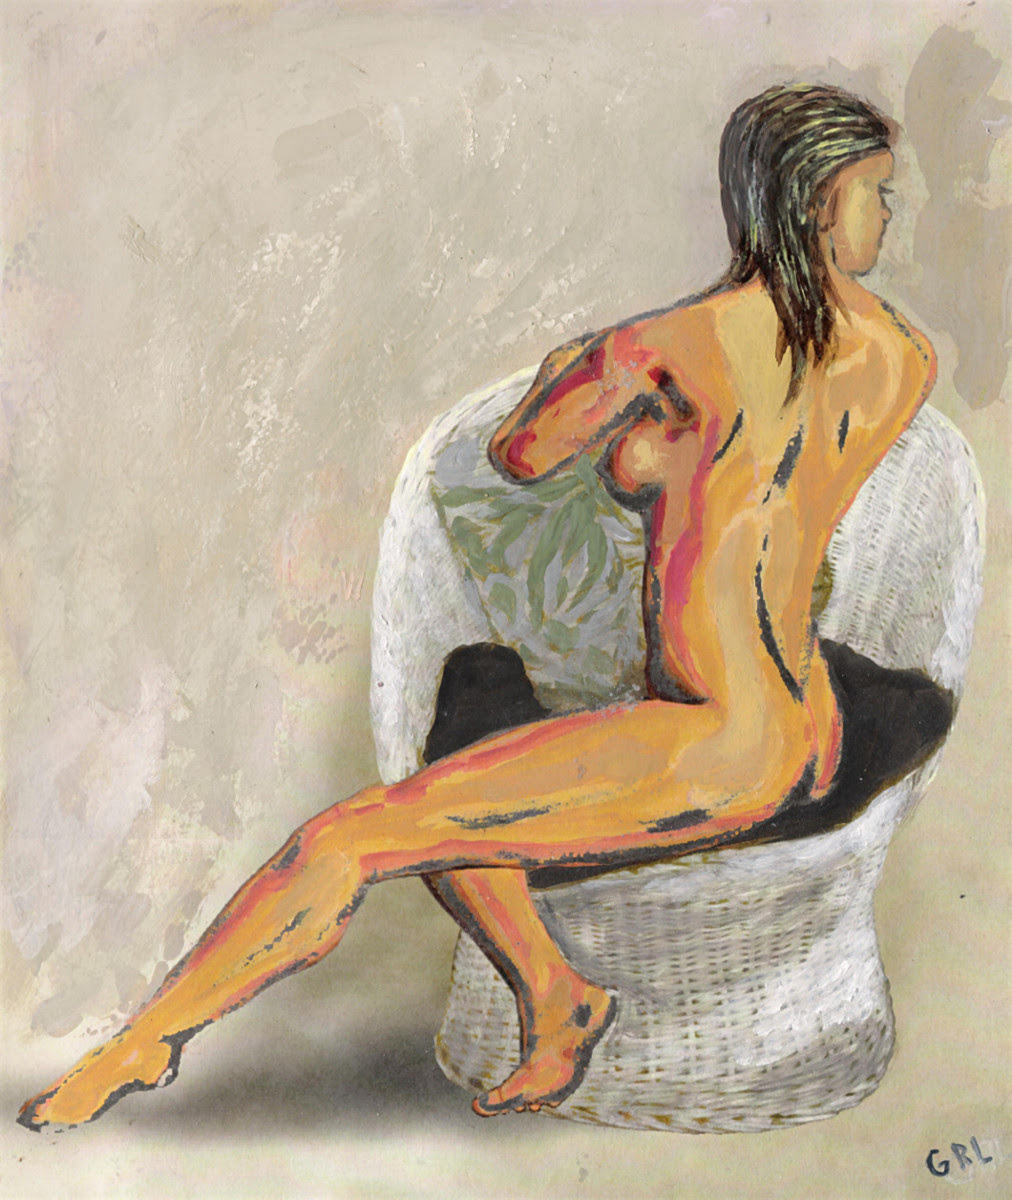 Fine Art Nude Paintings Female Contemporary Nude, Seated. Original multimedia fine art work, paintings. Original fine art sketches start ~ $50 to $100, paintings at ~ $100 up; $20 to $30 small, medium-size, prints. Free downloads. GrlFineArt. Fine art work, fine art decor, fineart; landscapes, seascapes, boats, figures, nudes, figurative art, flowers, still life, digital abstracts. Multimedia classical traditional modern acrylic oil painting paintings prints.